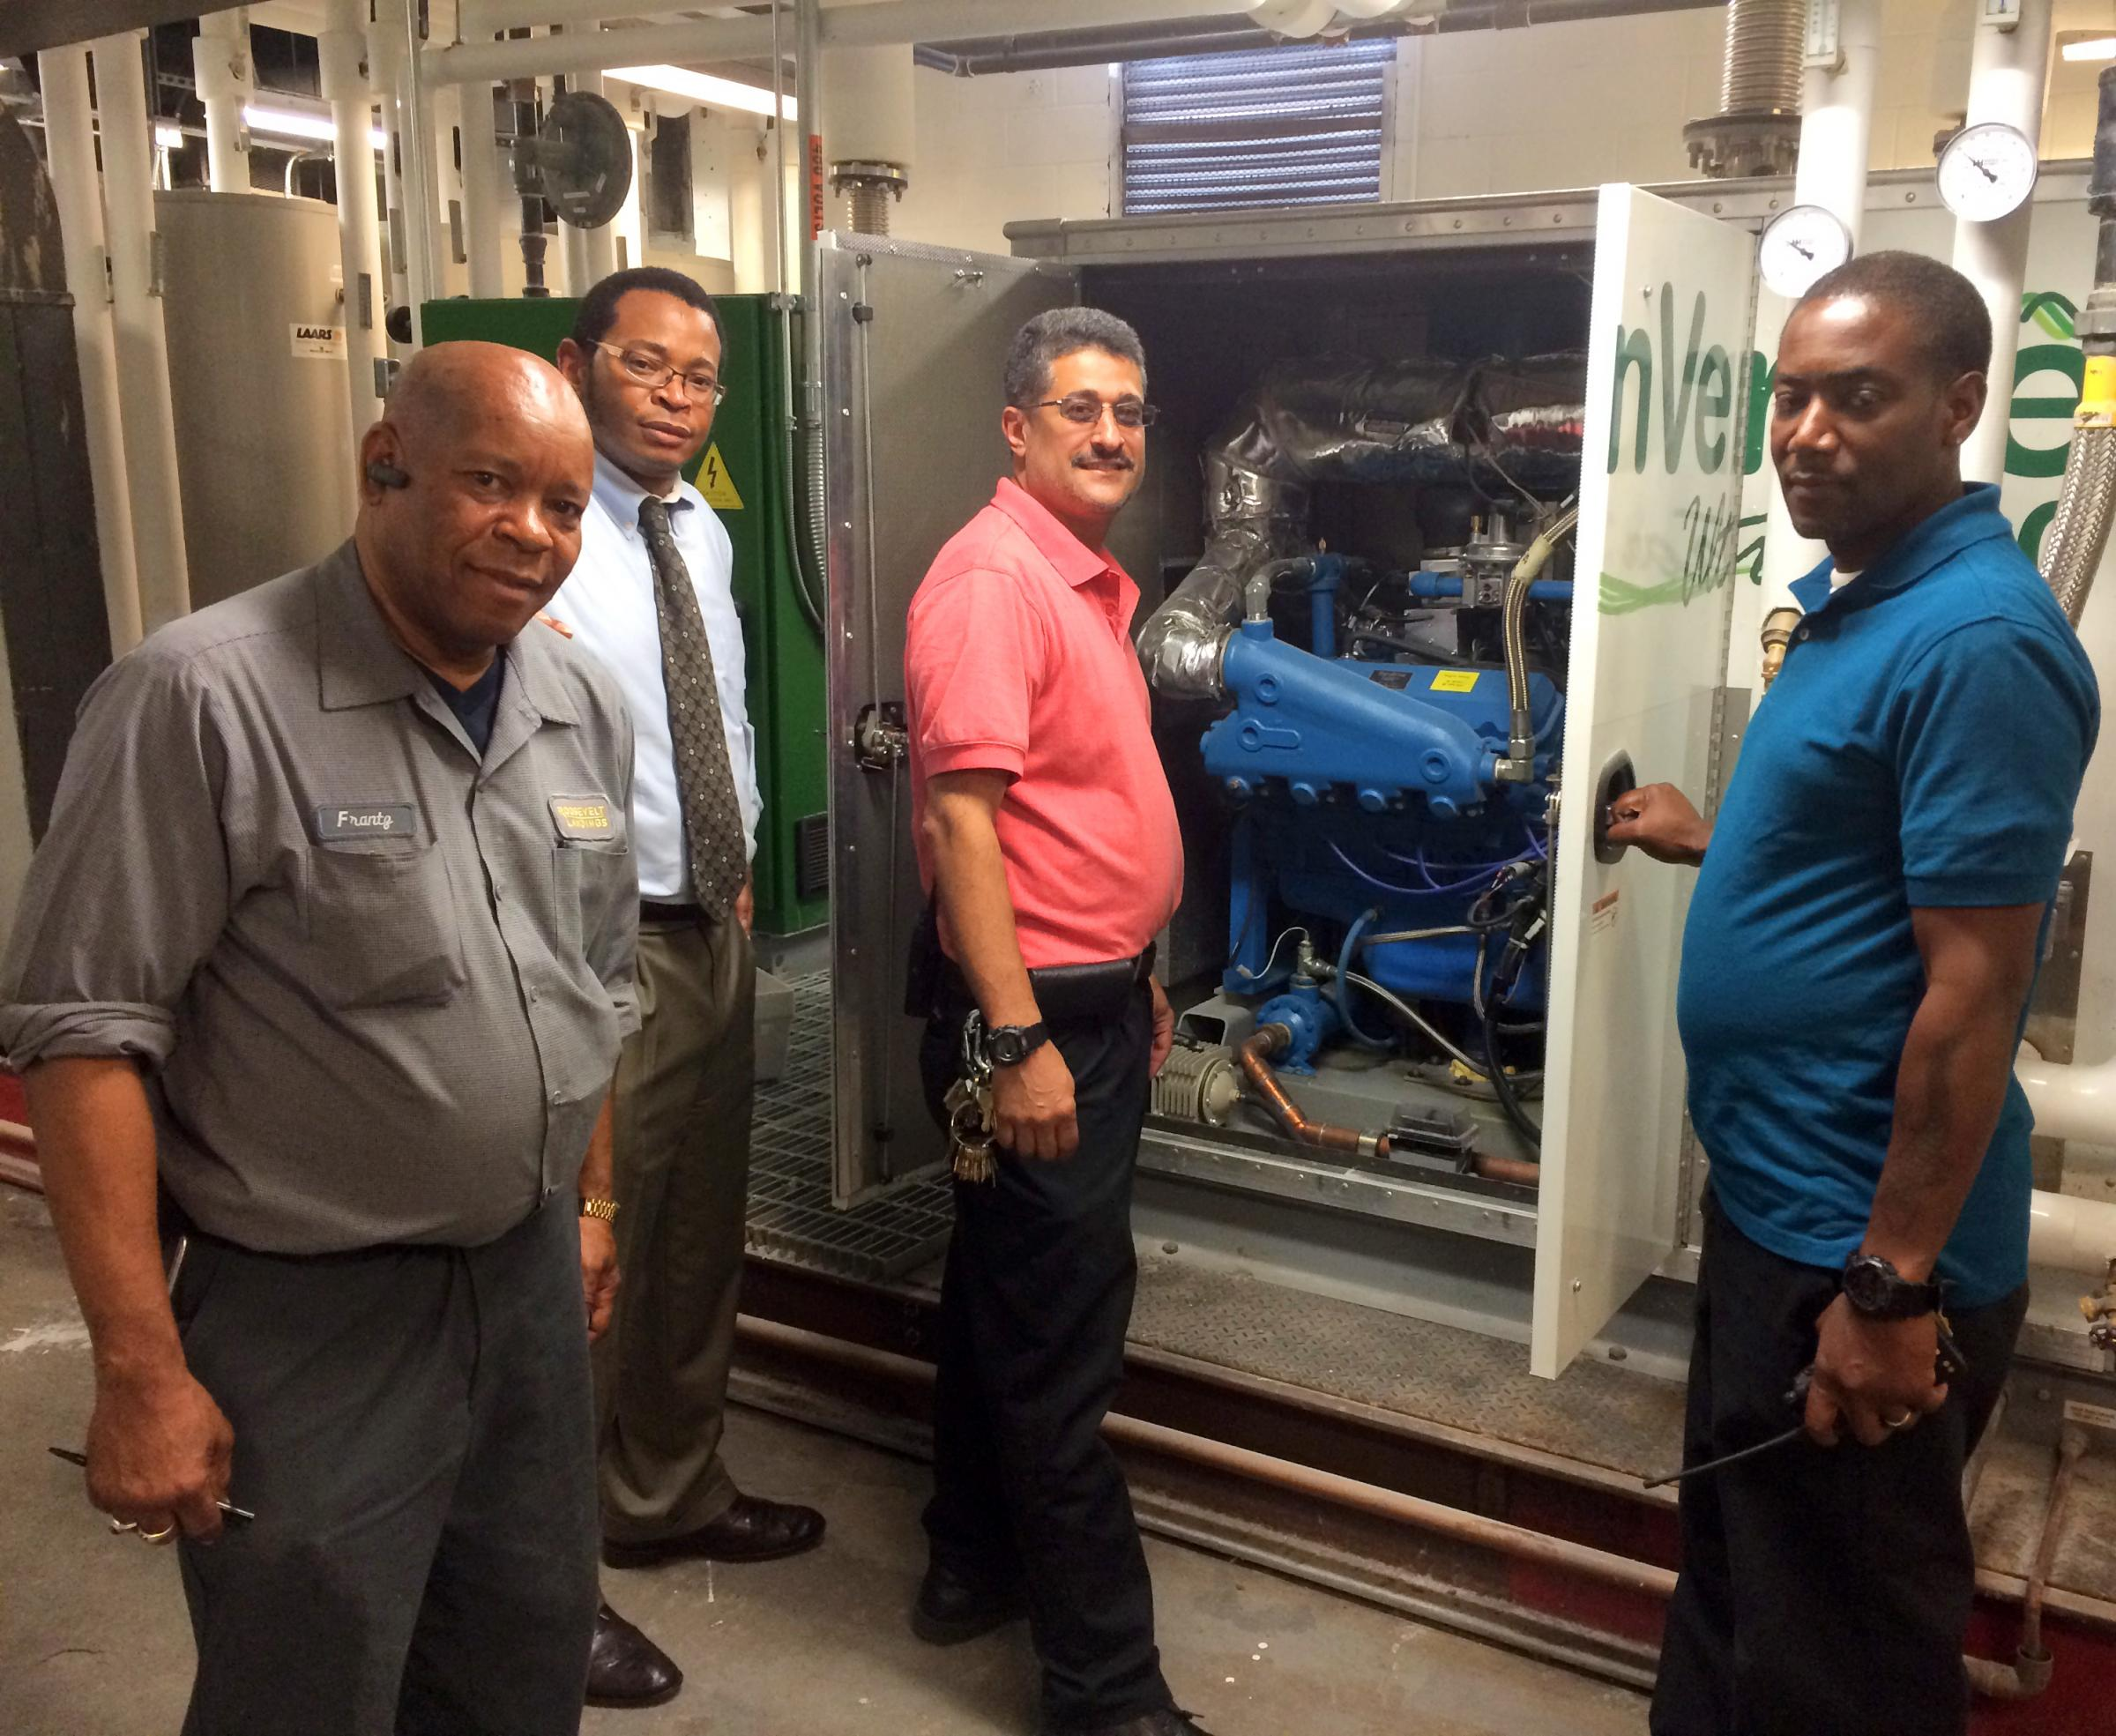 A TEAM INSPECTS hvAC EquIPMENT AT RooSEvELT LANDINgS oN JuNE 20, 2014.